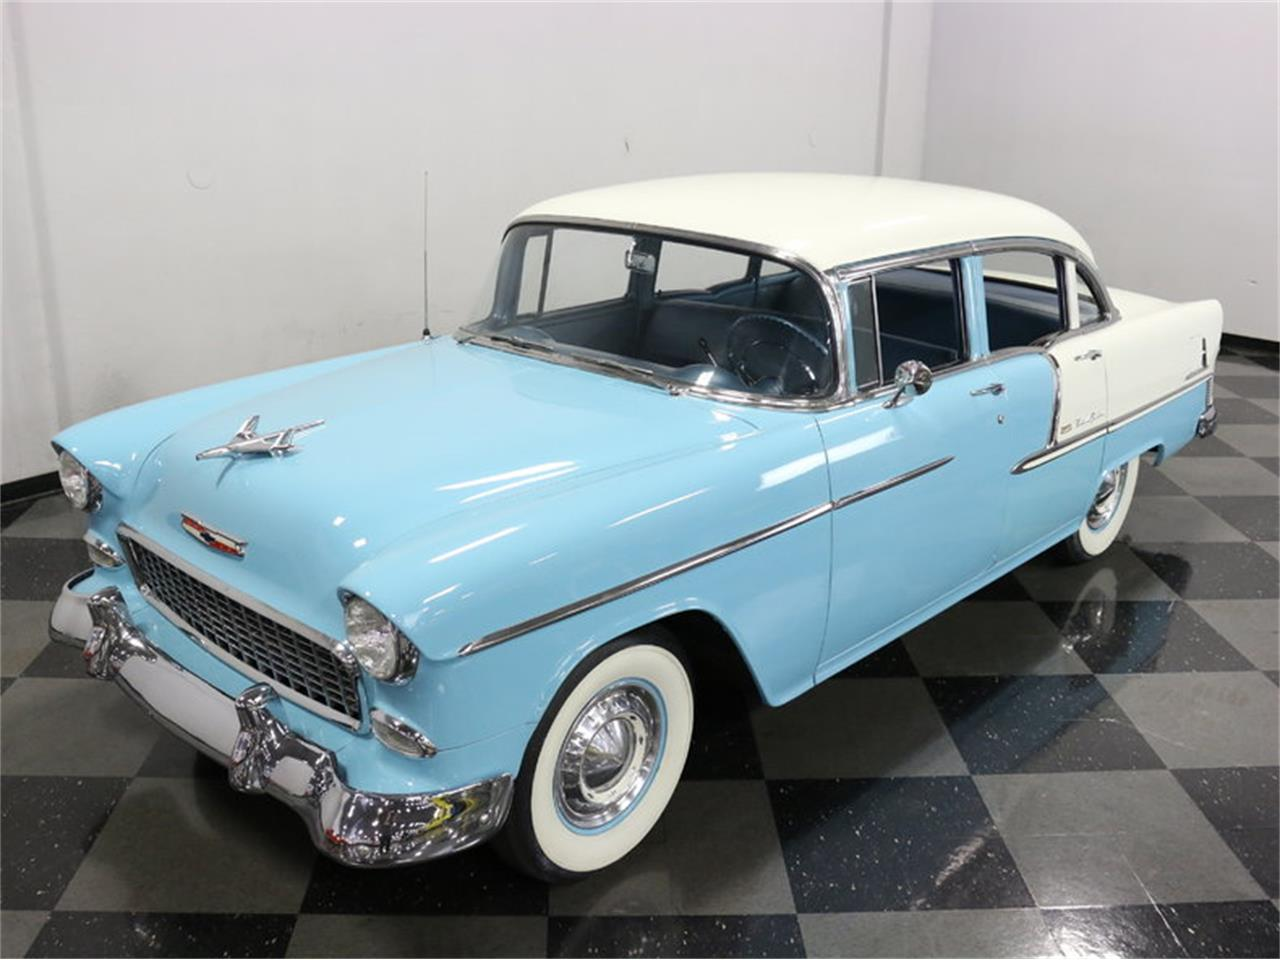 Large Picture of Classic '55 Chevrolet Bel Air located in Texas Offered by Streetside Classics - Dallas / Fort Worth - LSOT